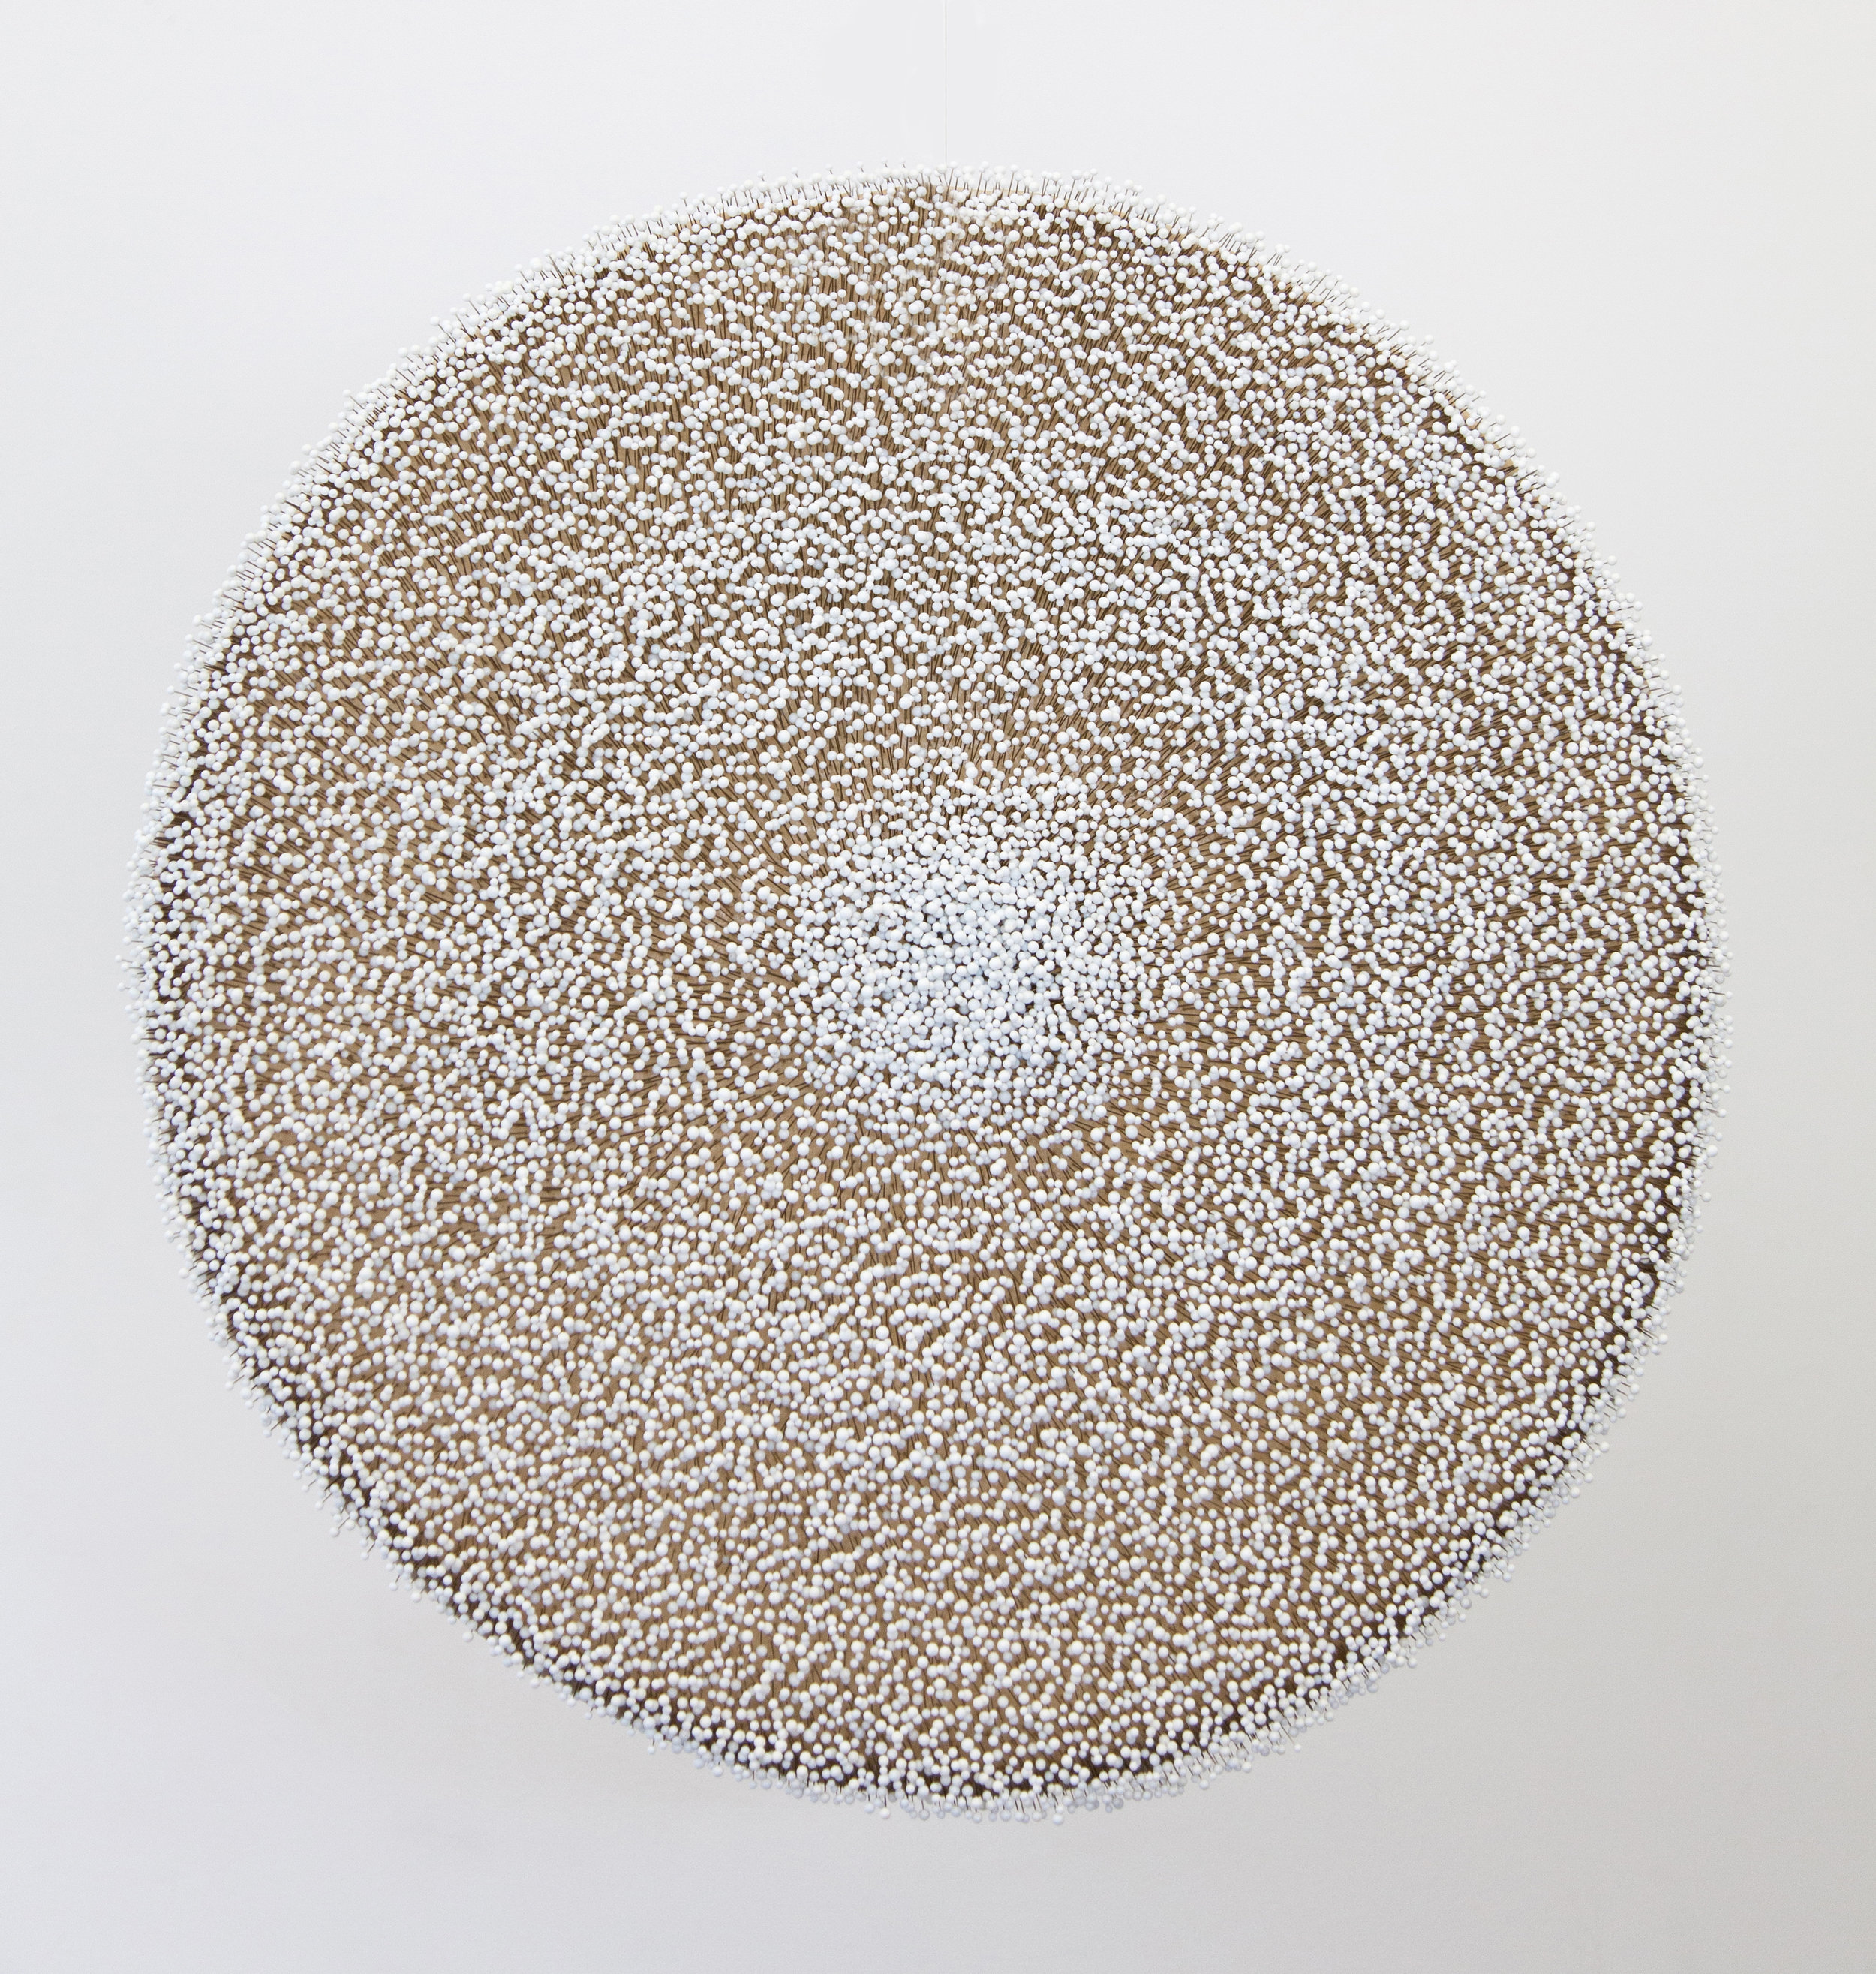 "Elements, front, white glass head pins, steel frame, linen and wax, 2.5' diameter x 4"" deep, 2006/2012"